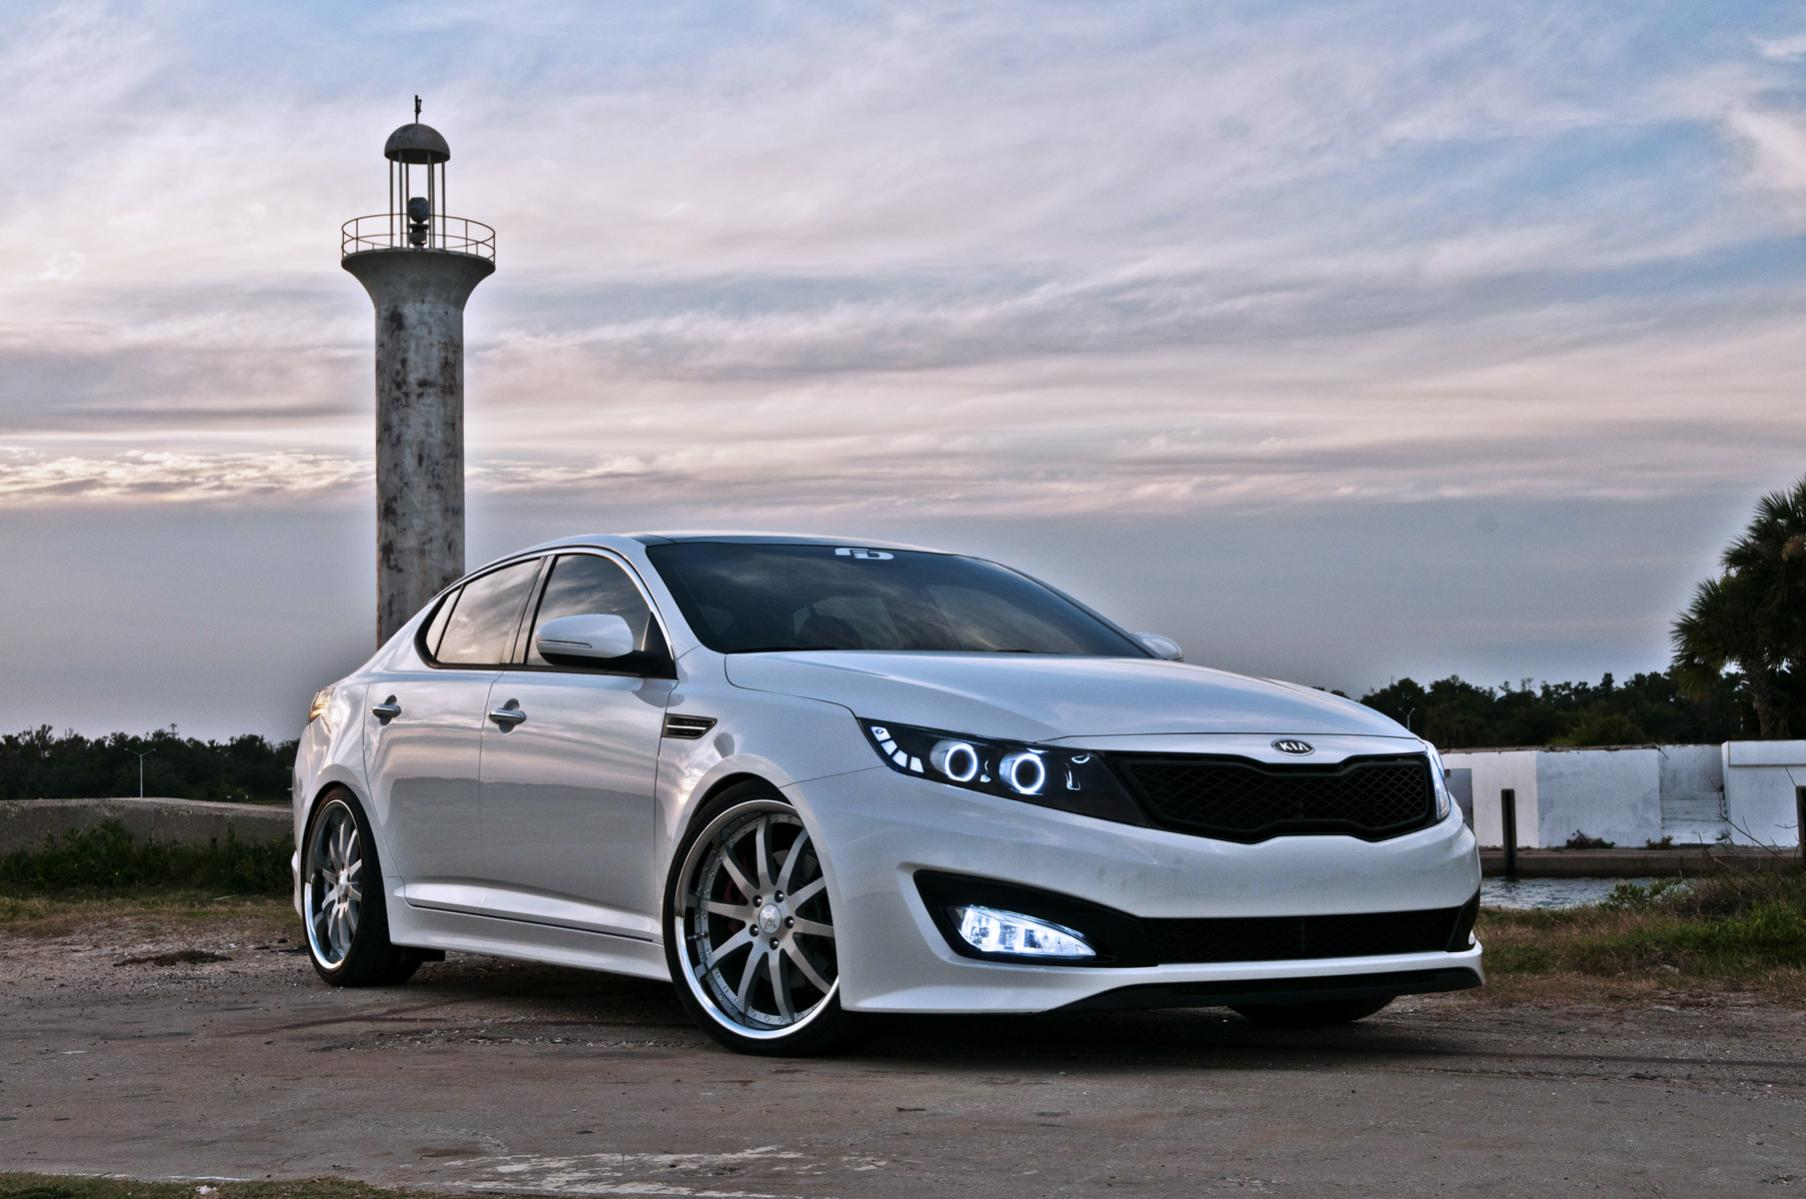 ... kia cadenza safety review and crash test ratings 2017 2018 2017 kia